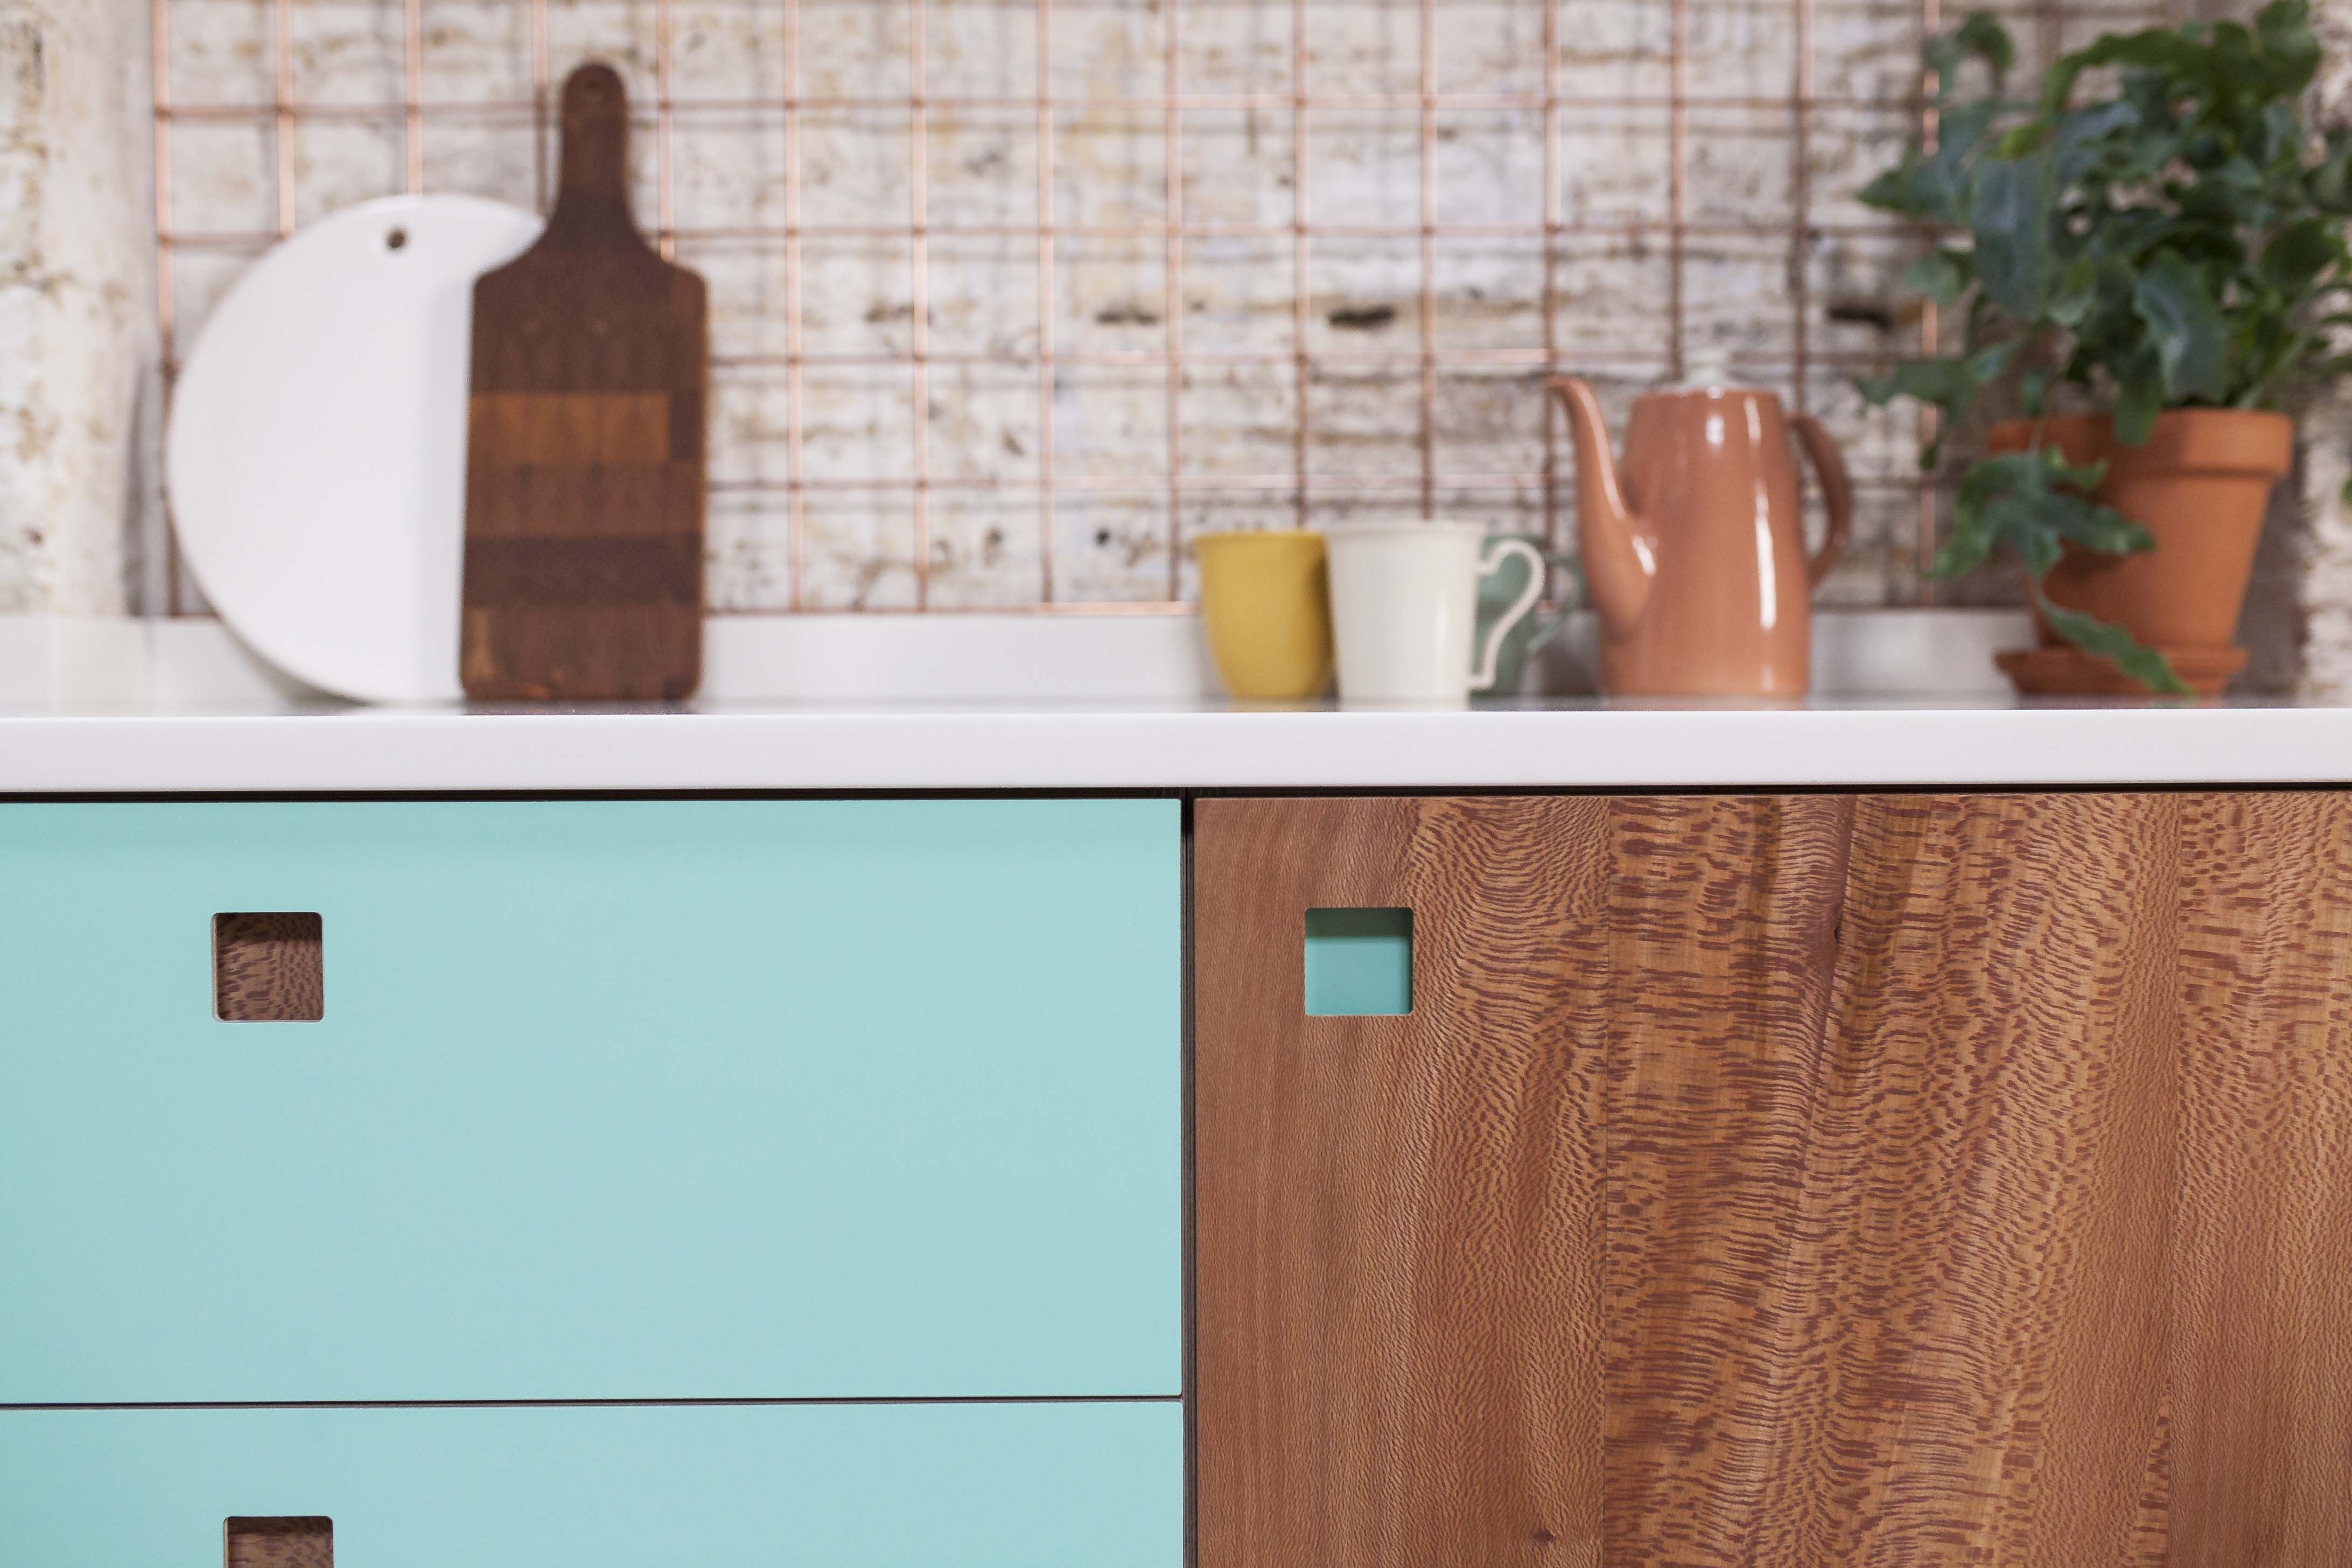 Brixton East Kitchen with London Plane, Lido laminate & square inset ...